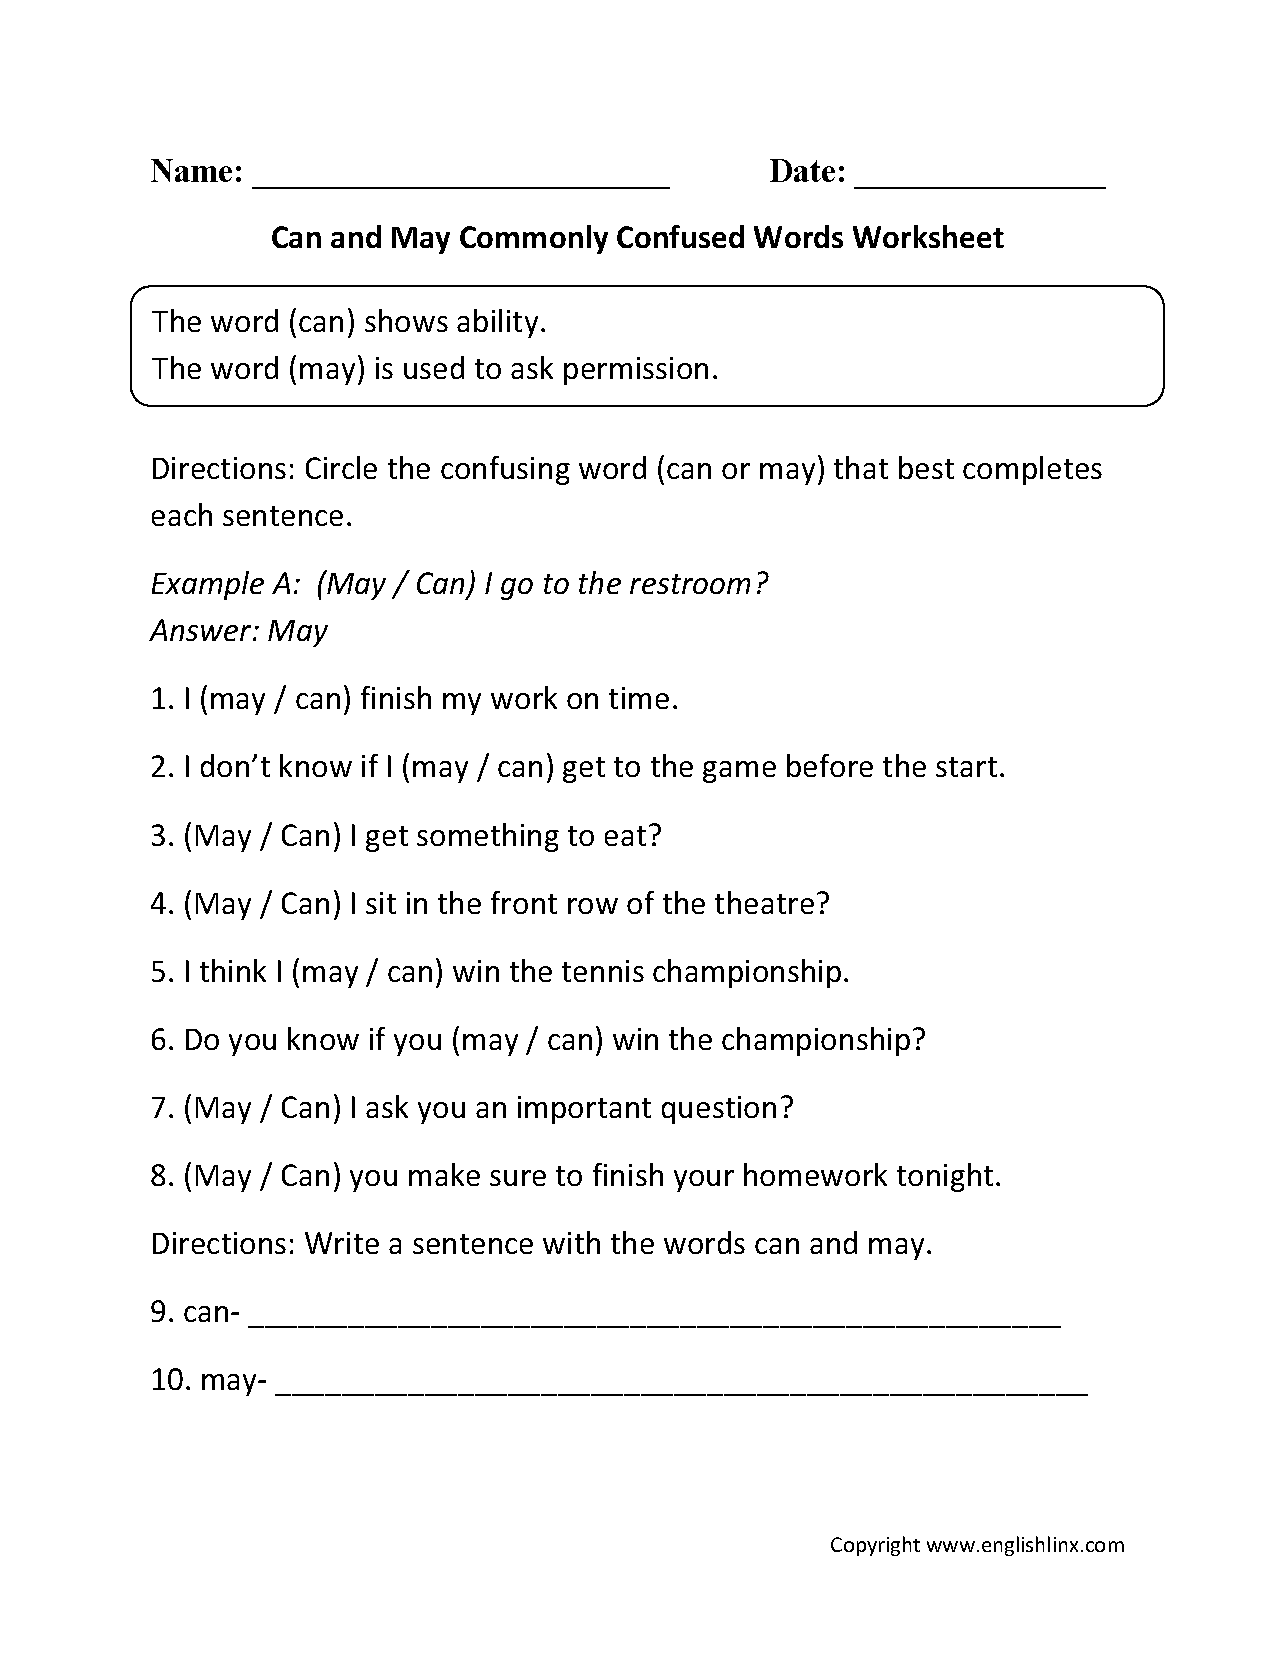 worksheet Commonly Confused Words Worksheet word usage worksheets commonly confused words worksheets